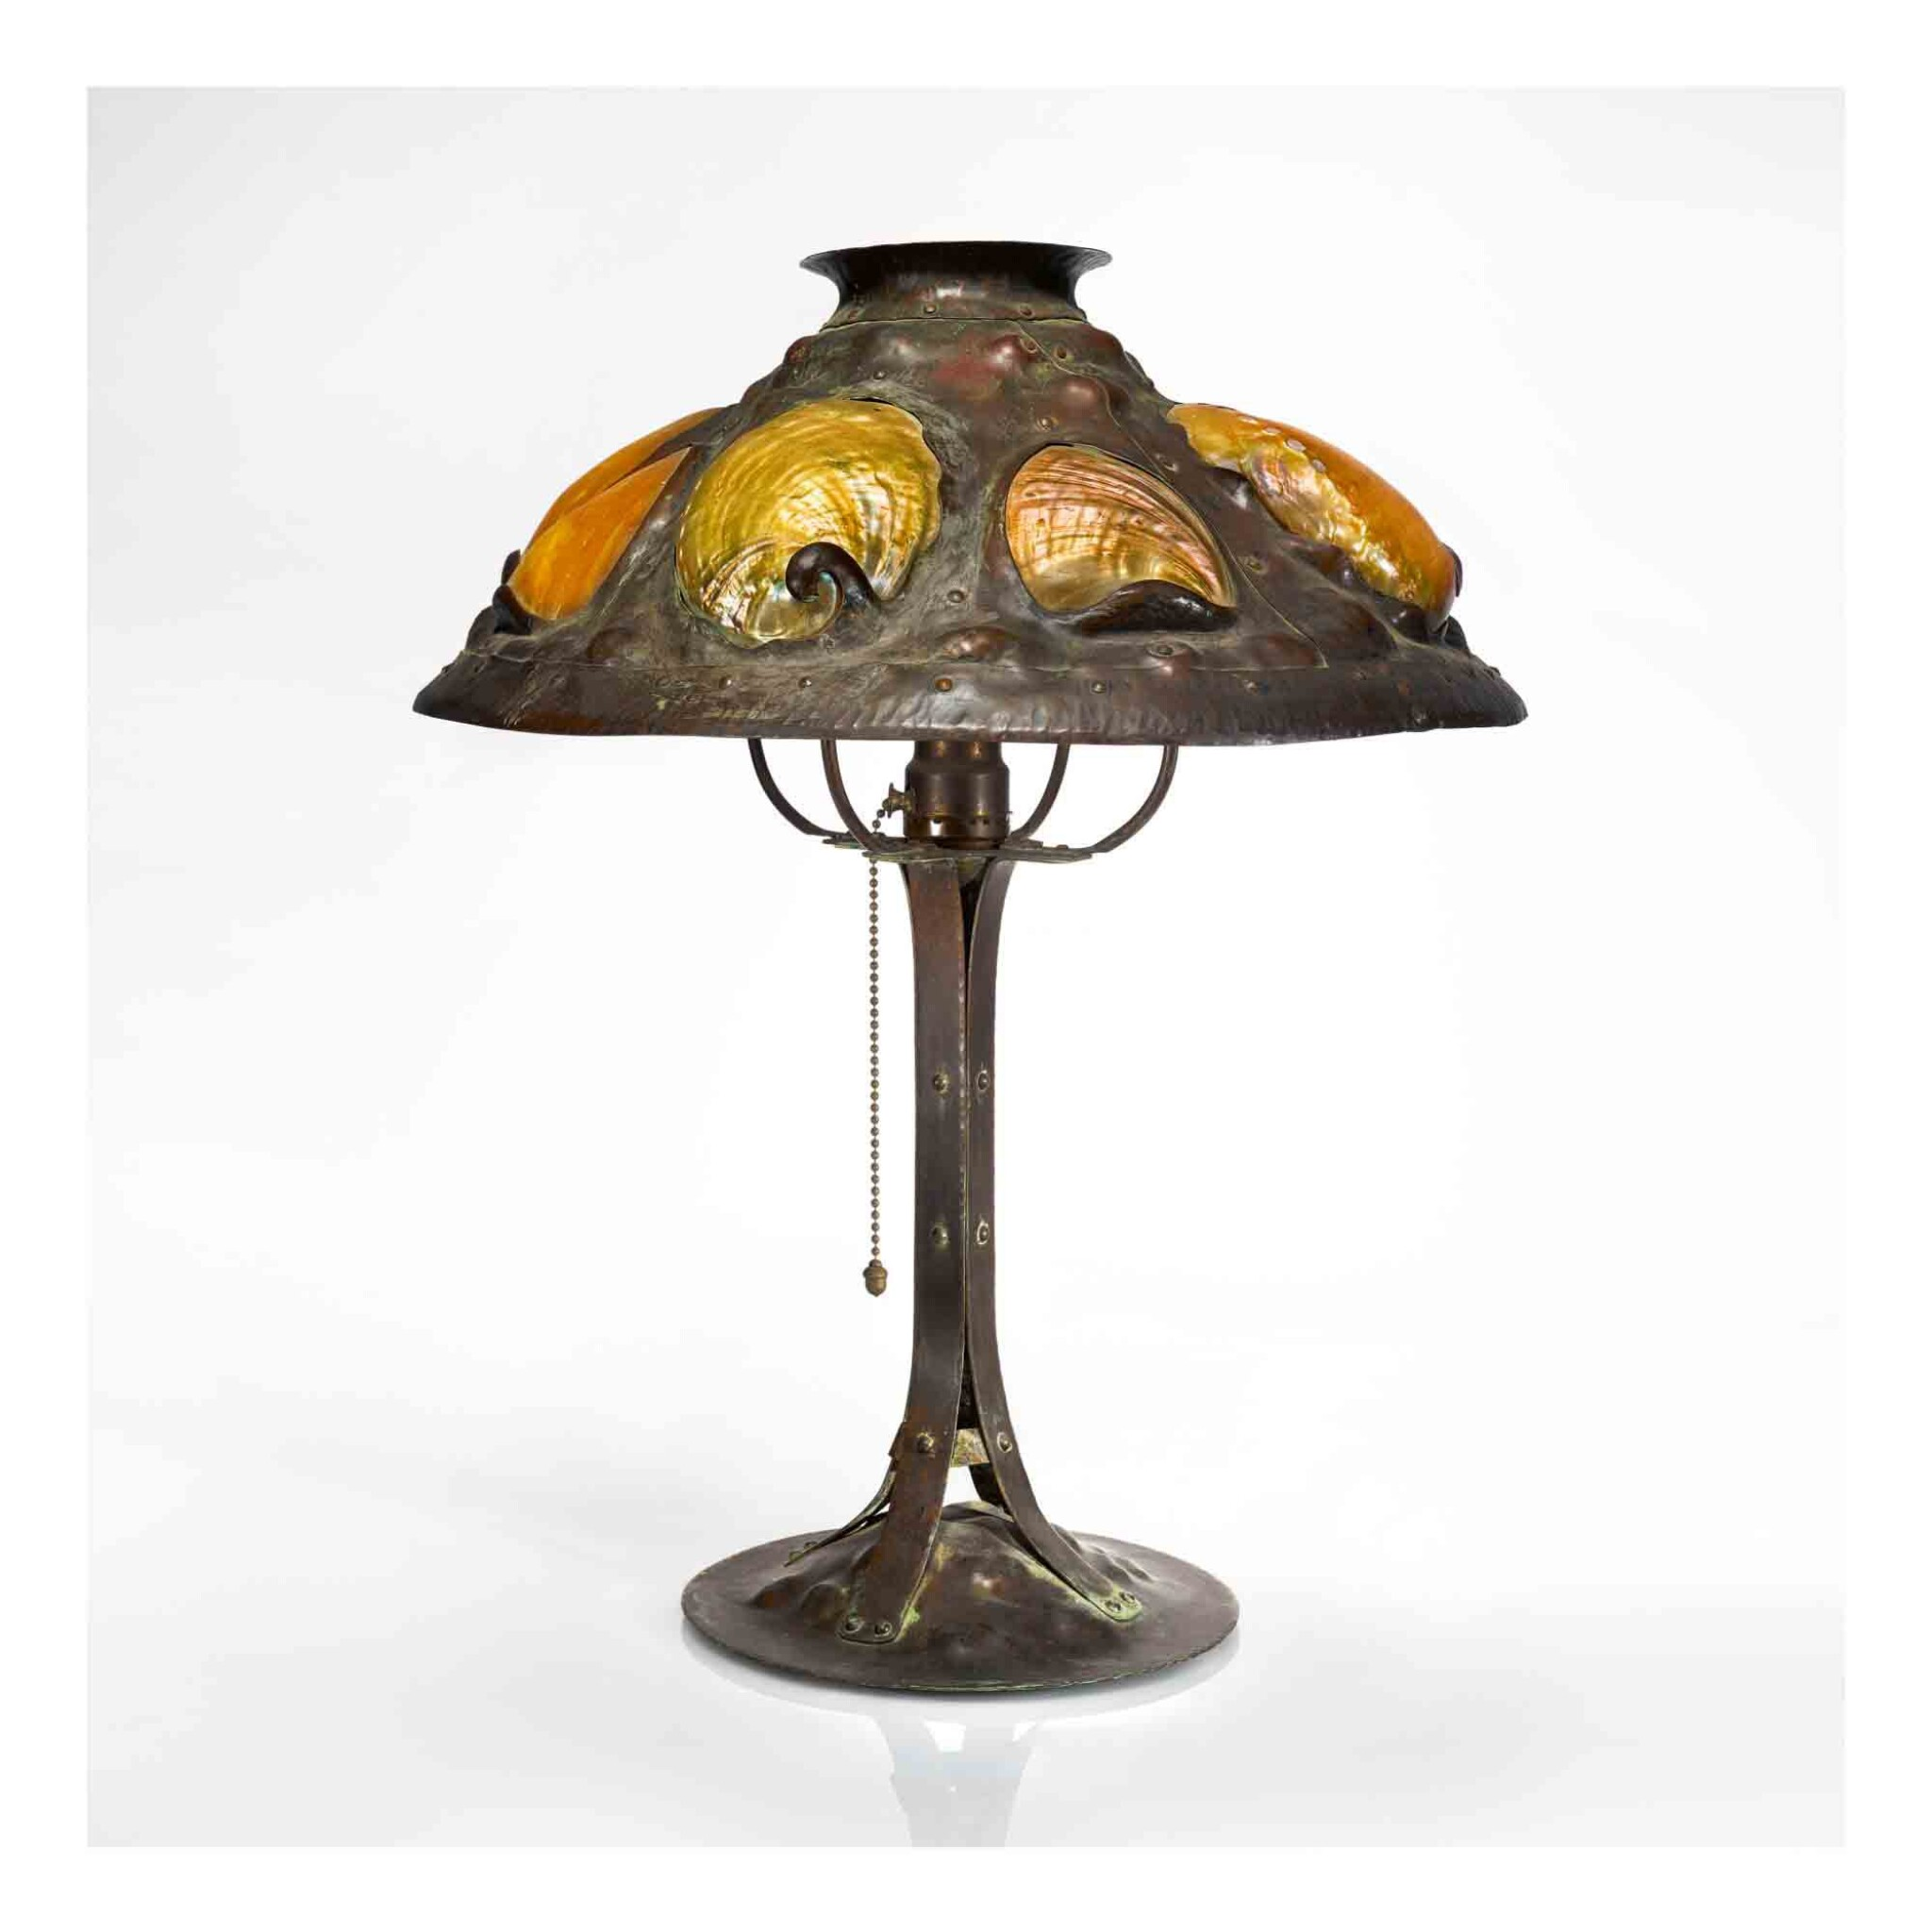 View 1 of Lot 333. Table Lamp.